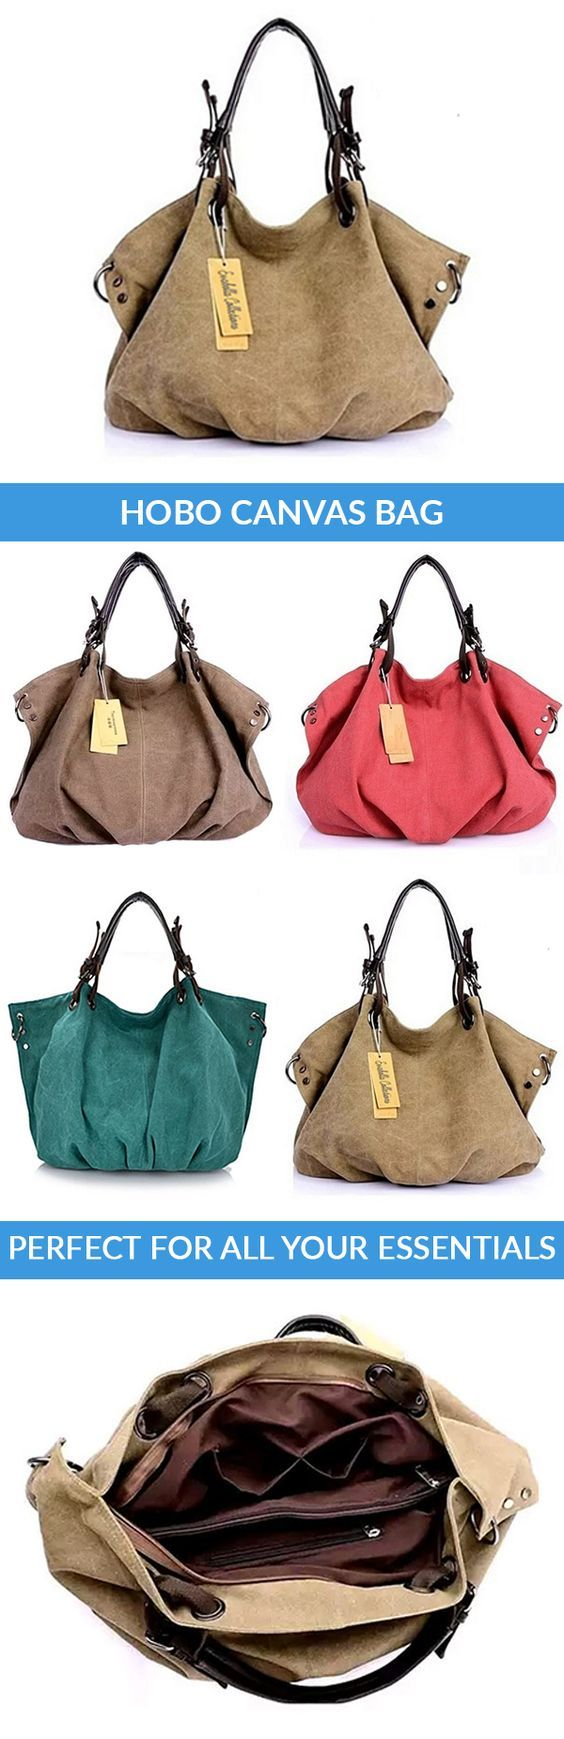 crosshoakley store ny lhxr  Purchase JOURNEY COLLECTION Canvas Handbag In 8 Colors from Vista Shops on  OpenSky Share and compare all Shoulder bag in Accessories